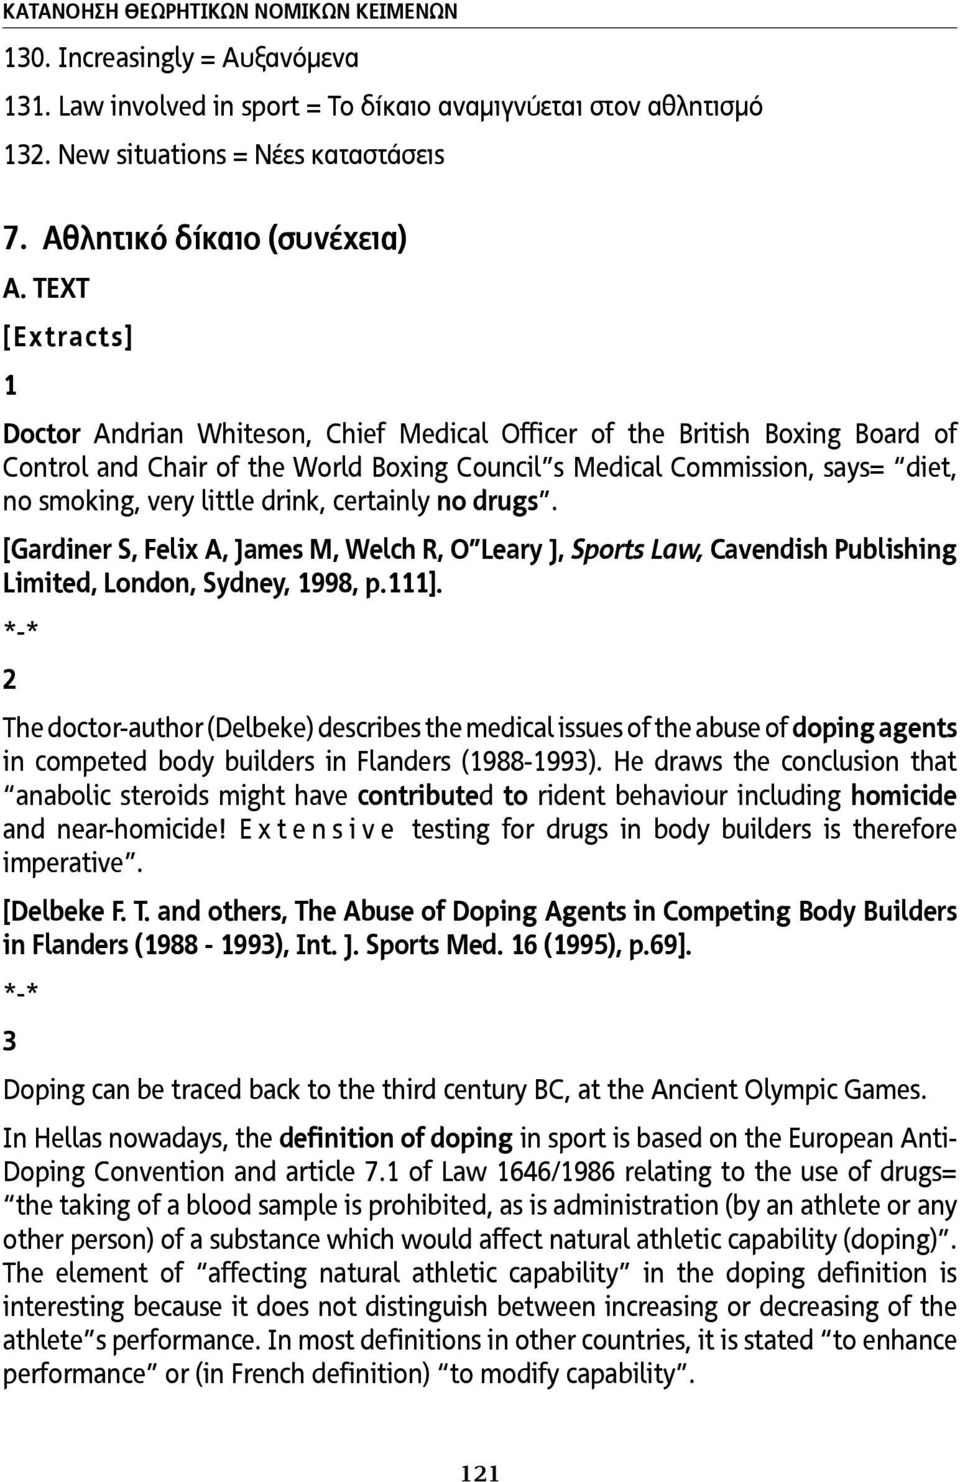 TEXT [Extracts] 1 Doctor Andrian Whiteson, Chief Medical Officer of the British Boxing Board of Control and Chair of the World Boxing Council s Medical Commission, says= diet, no smoking, very little